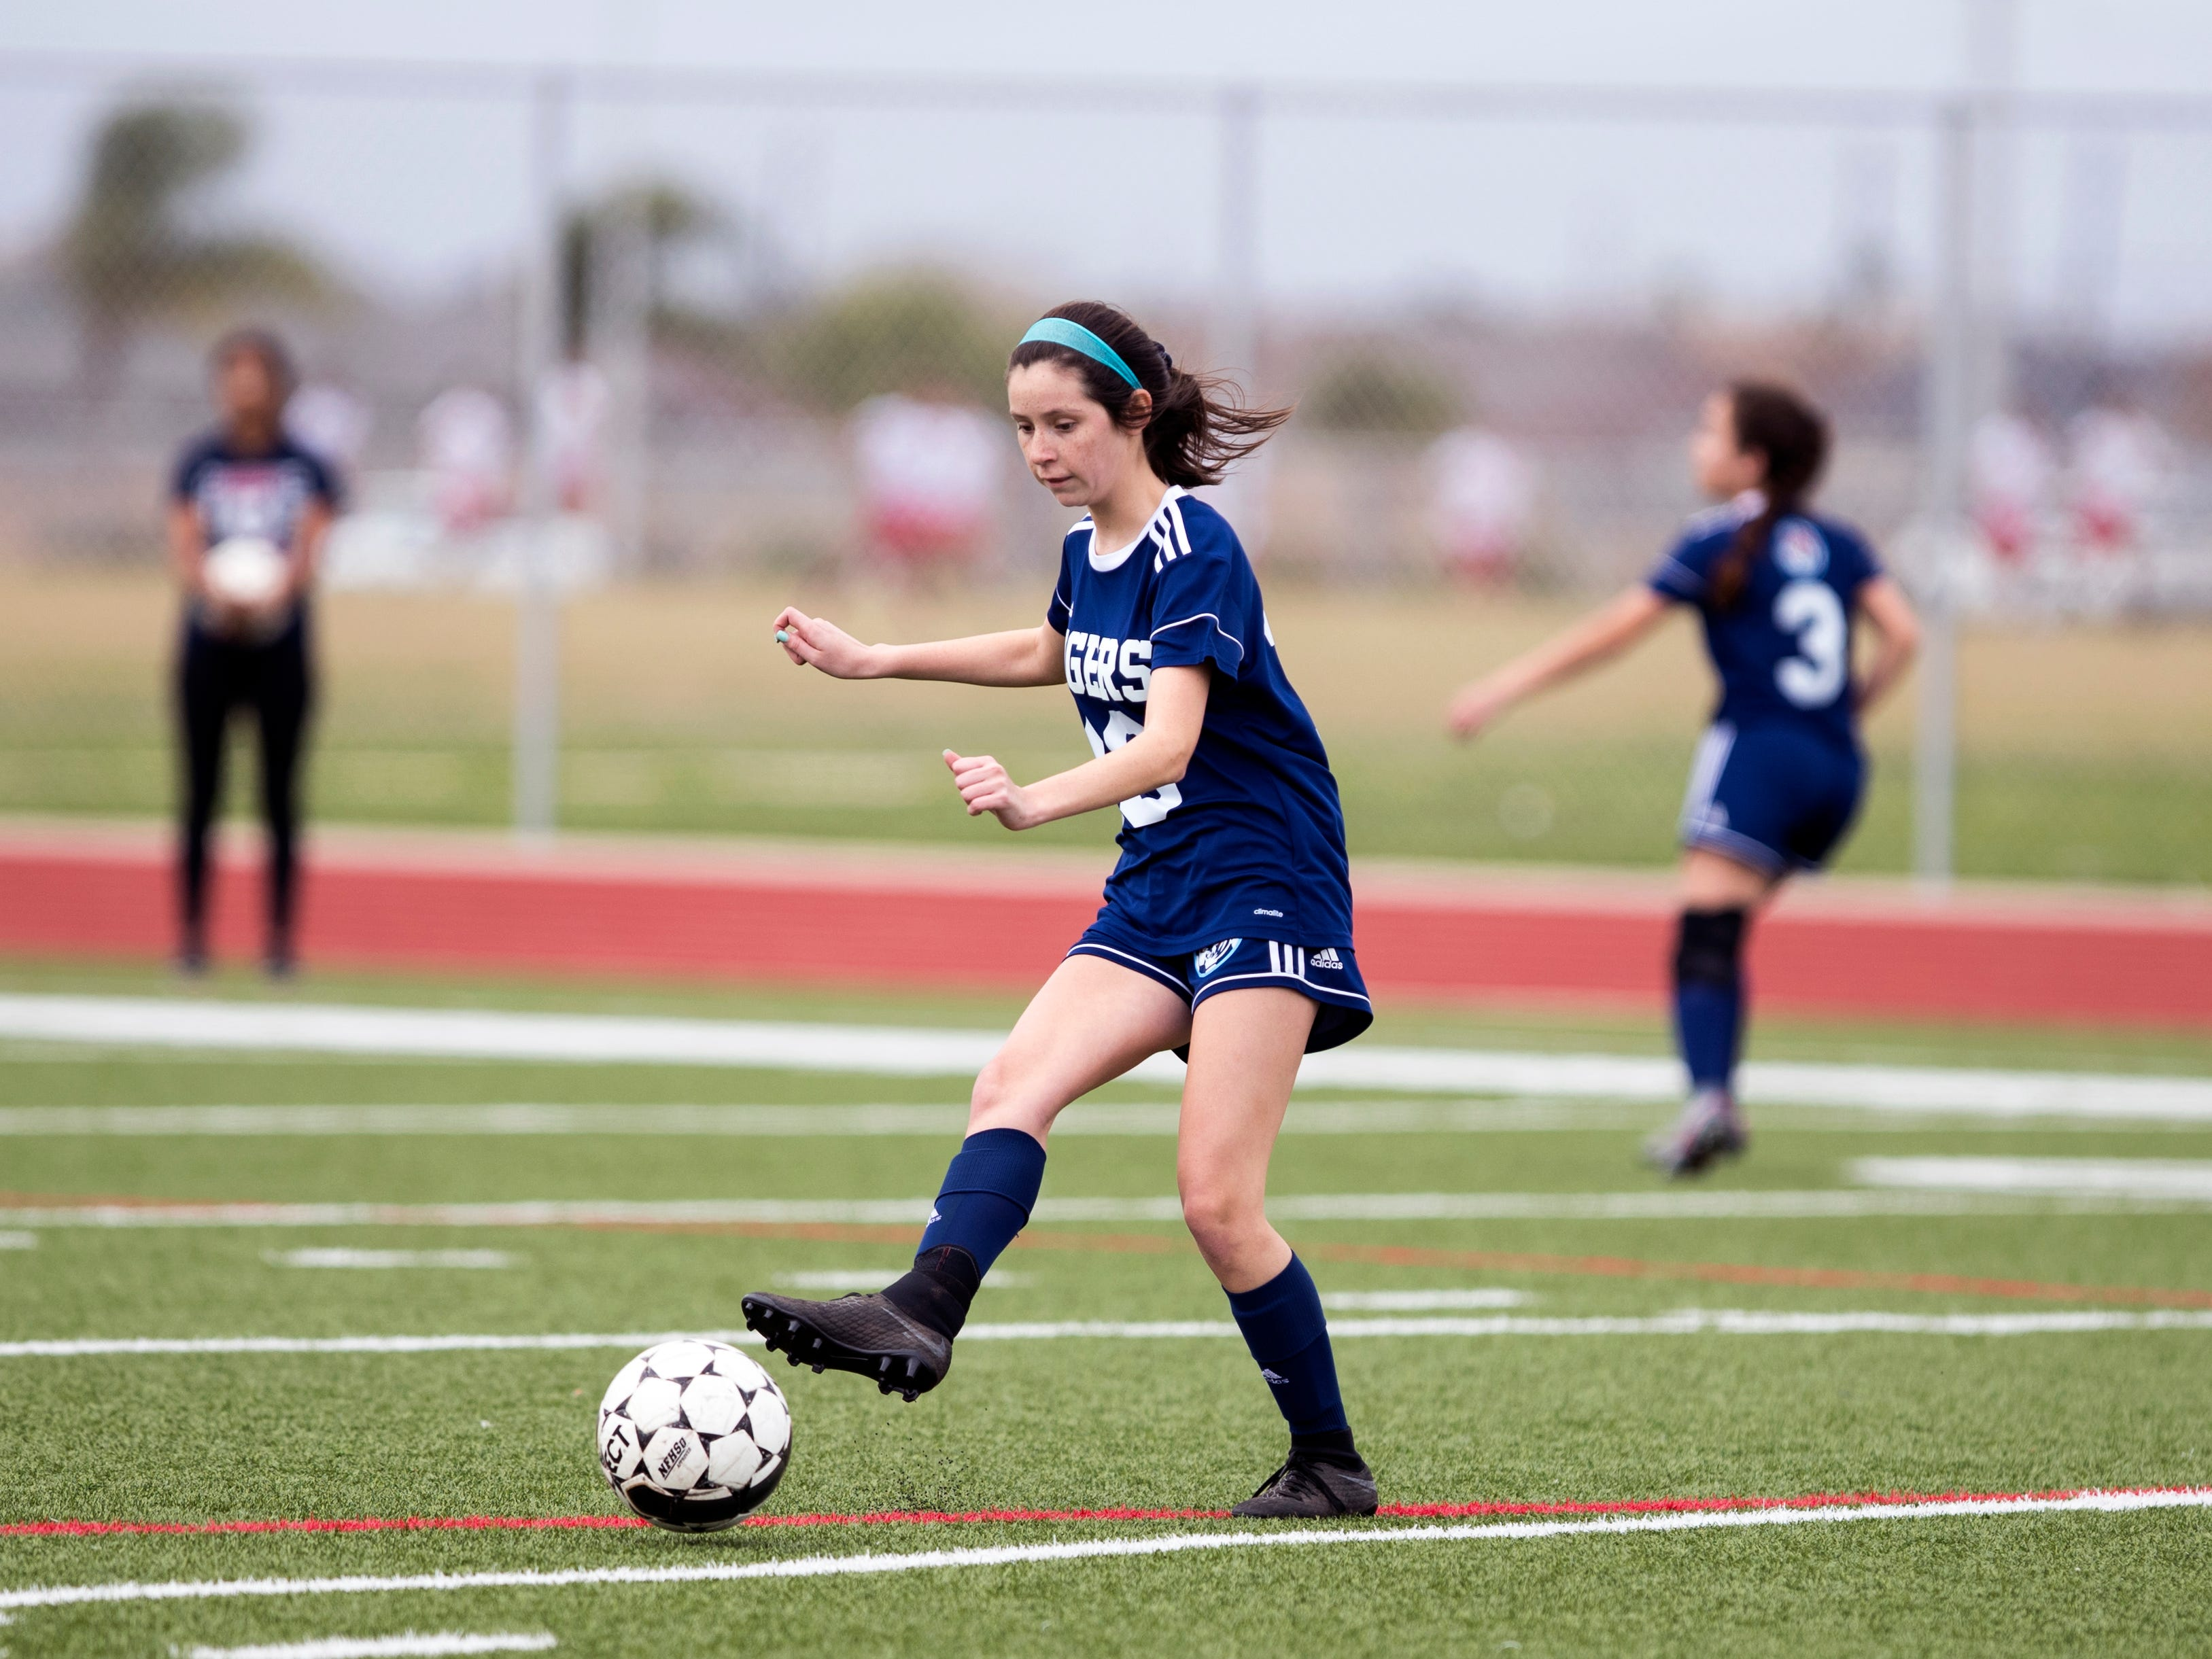 Carroll's Emily Barrera goes after the ball in the game against Veterans Memorial in the Mira's Soccer Tournament at Veterans Memorial High School on Friday, January 11, 2019. The Eagles won the game 5-0.